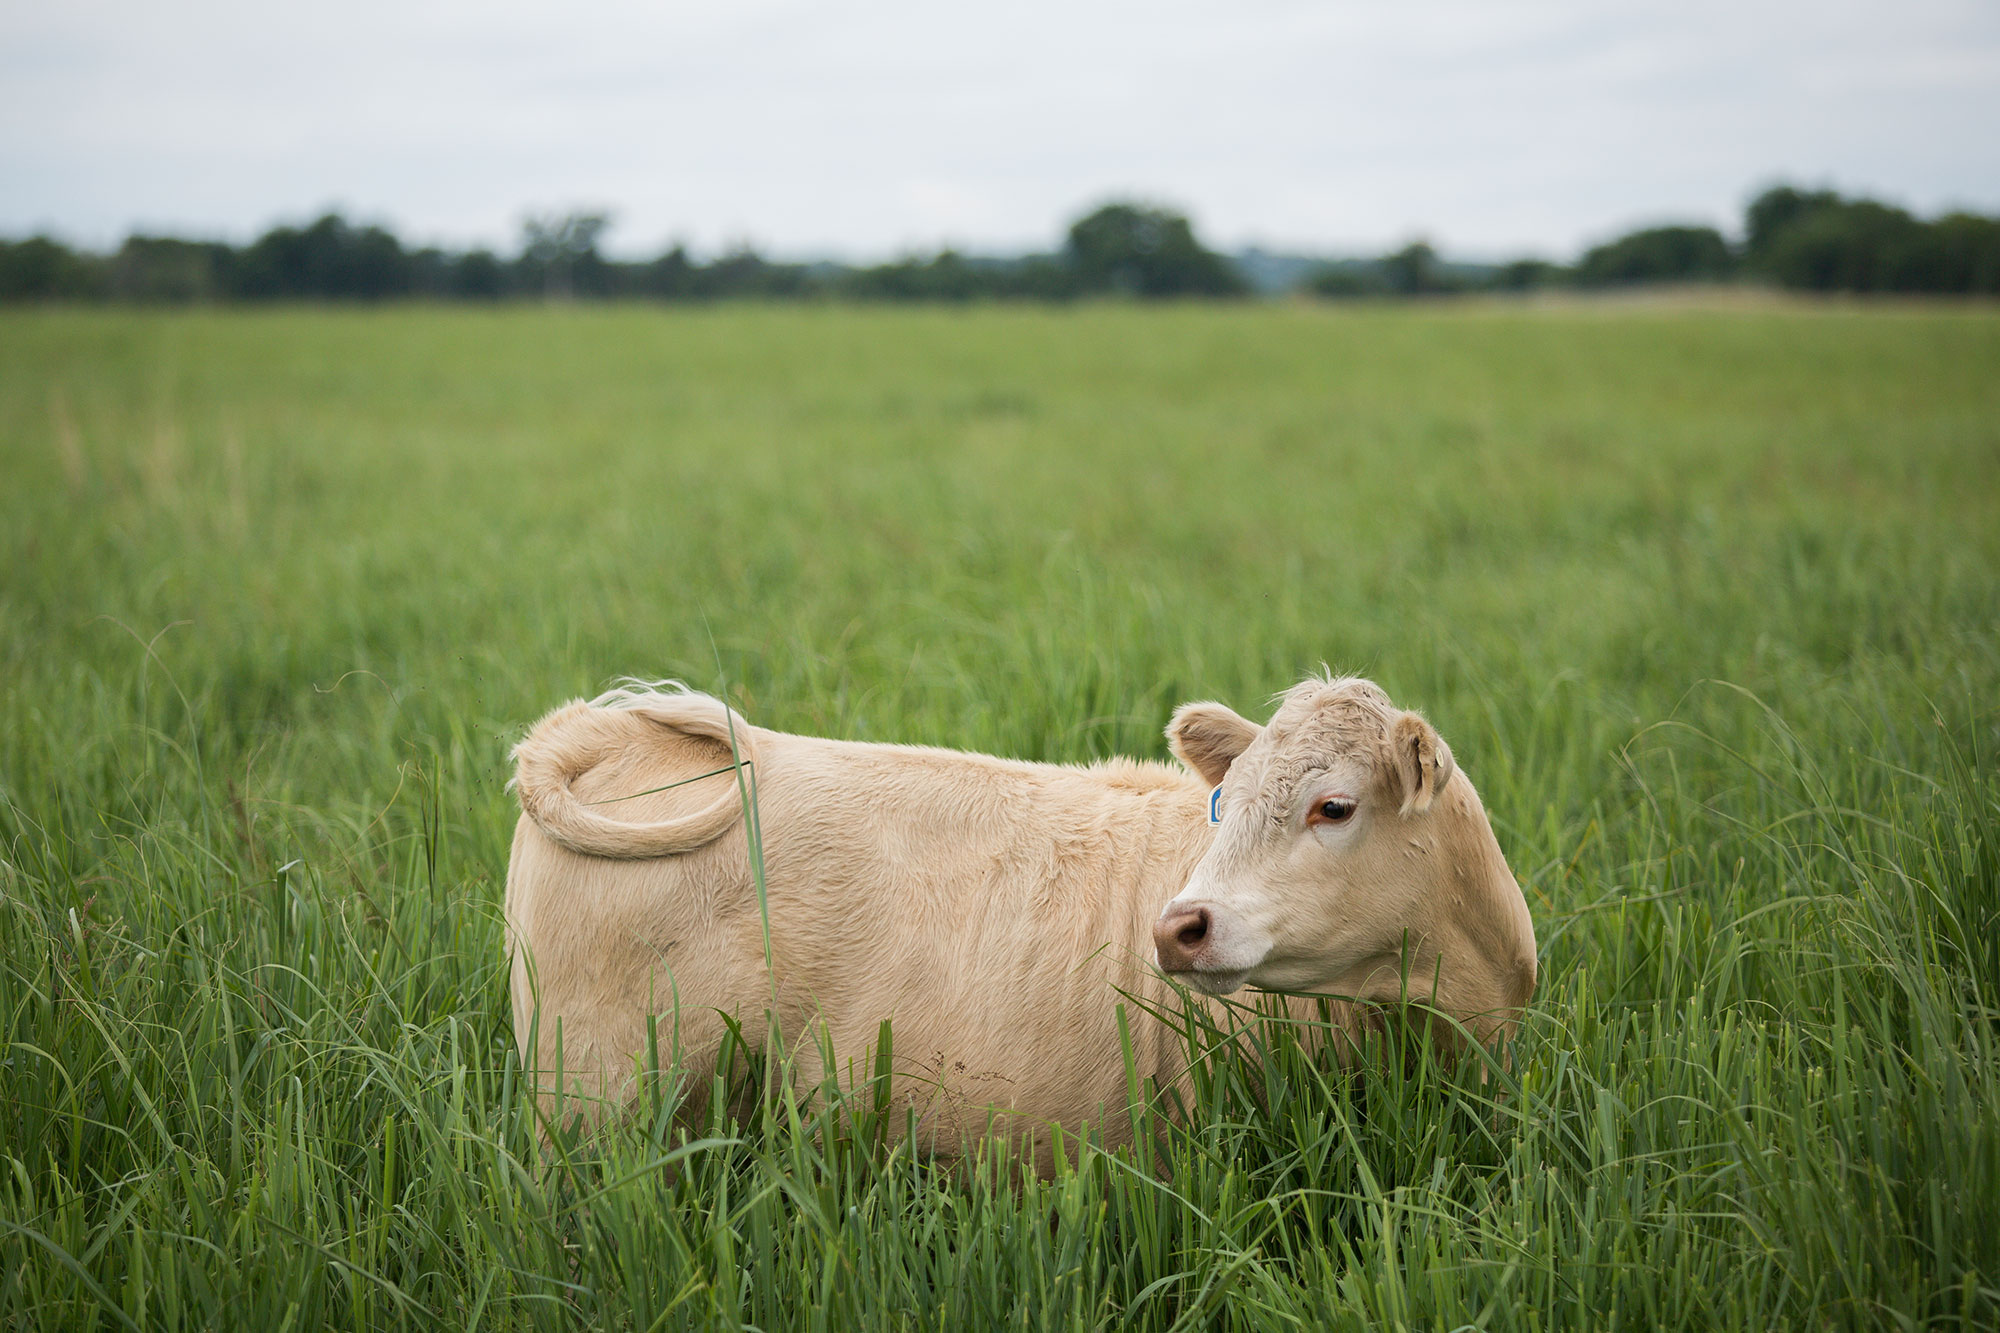 Cow in pasture with forage